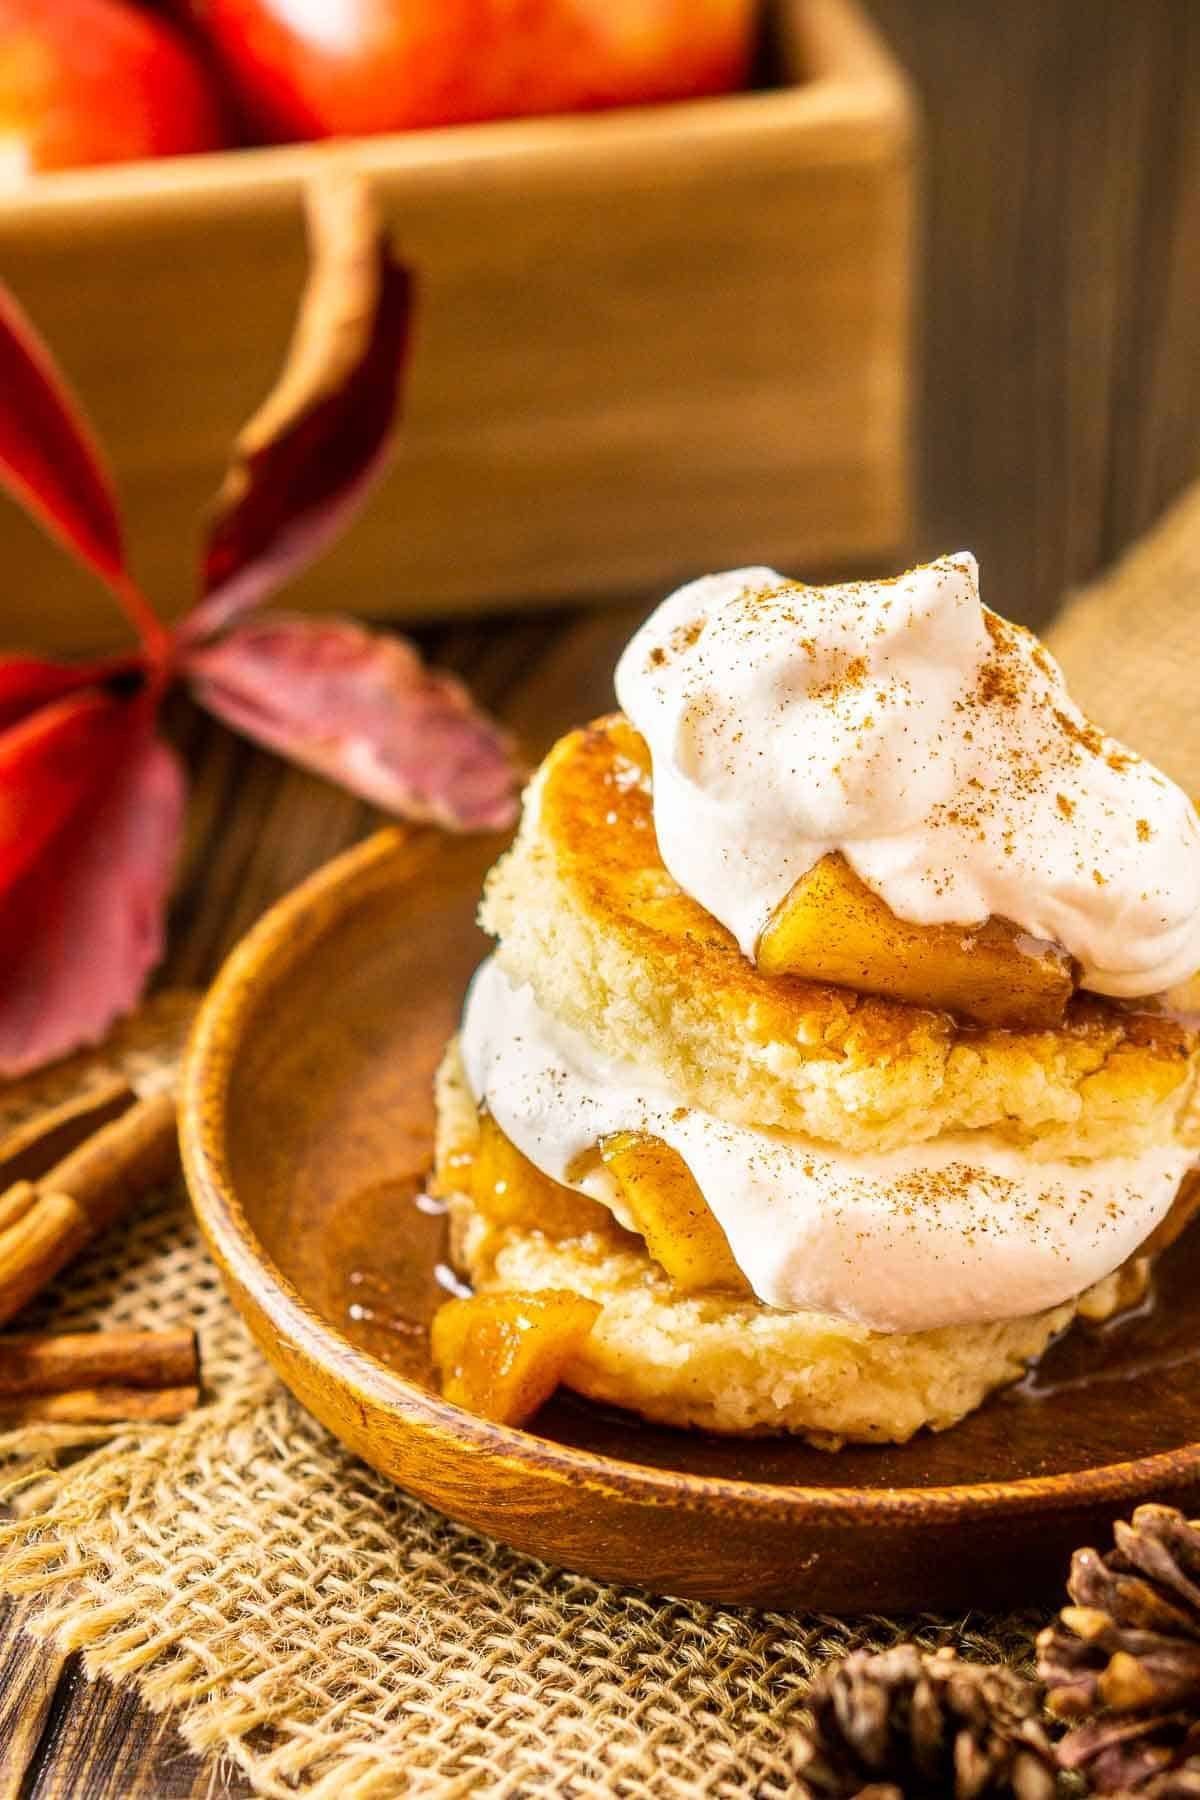 A stack of apple shortcakes on a wooden plate with a cinnamon stick next to it.